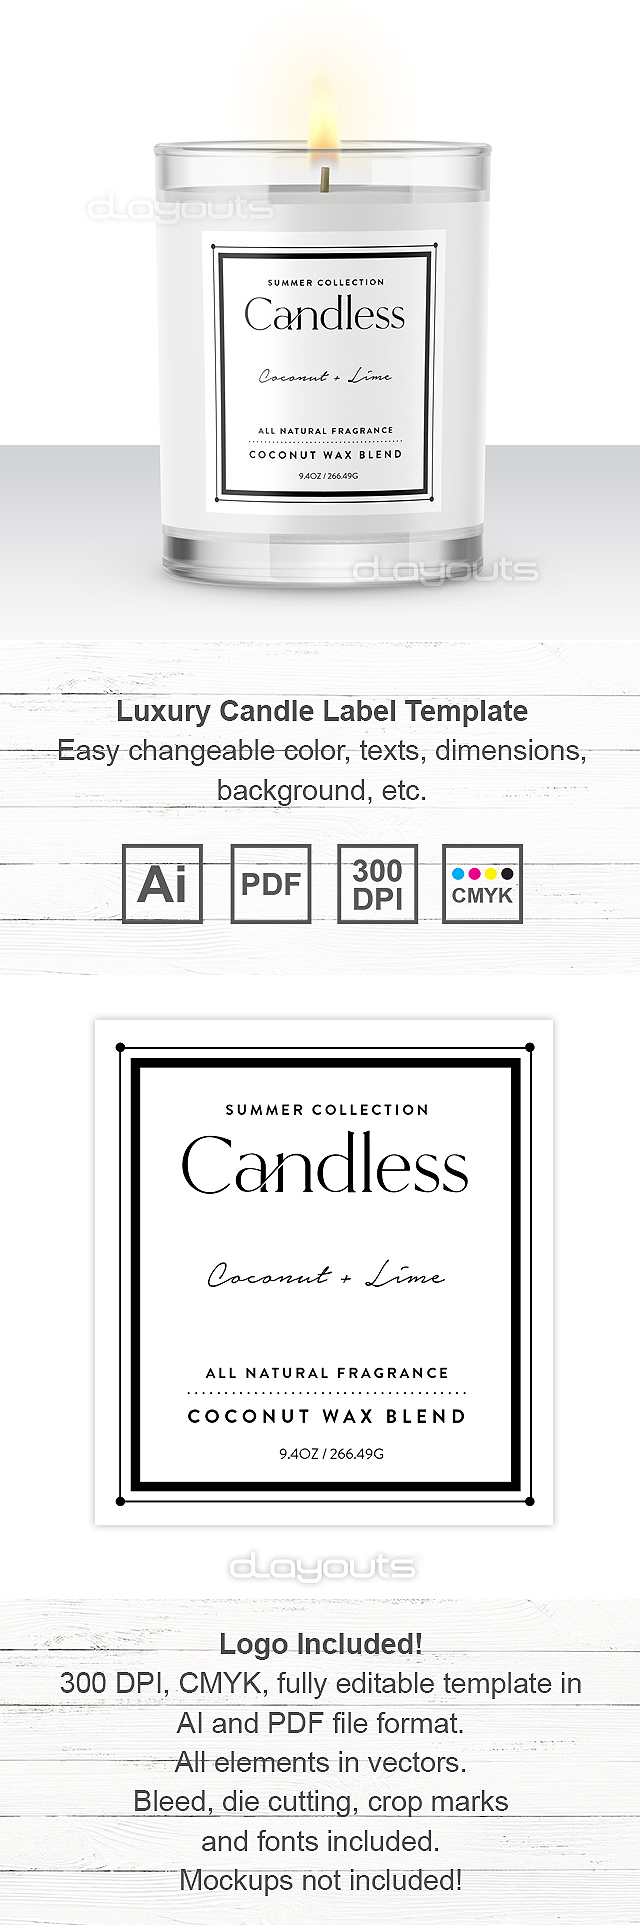 Luxury Candle Label Template